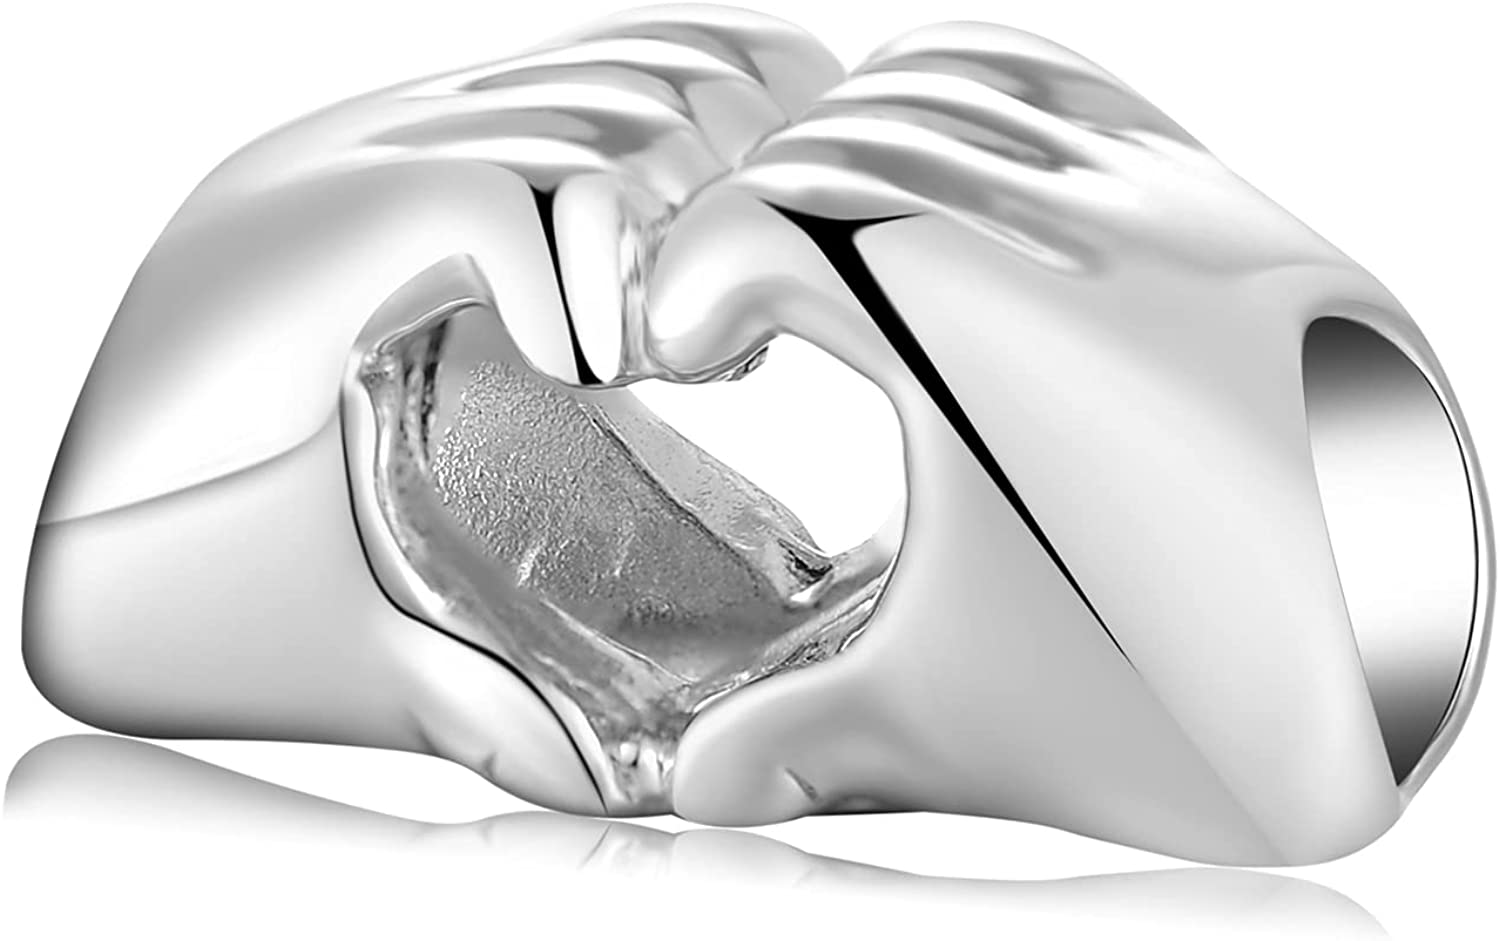 AIEGNOS Love Miami Mall Max 89% OFF Heart Charms for Sterling Silver Bracelet Charm 925